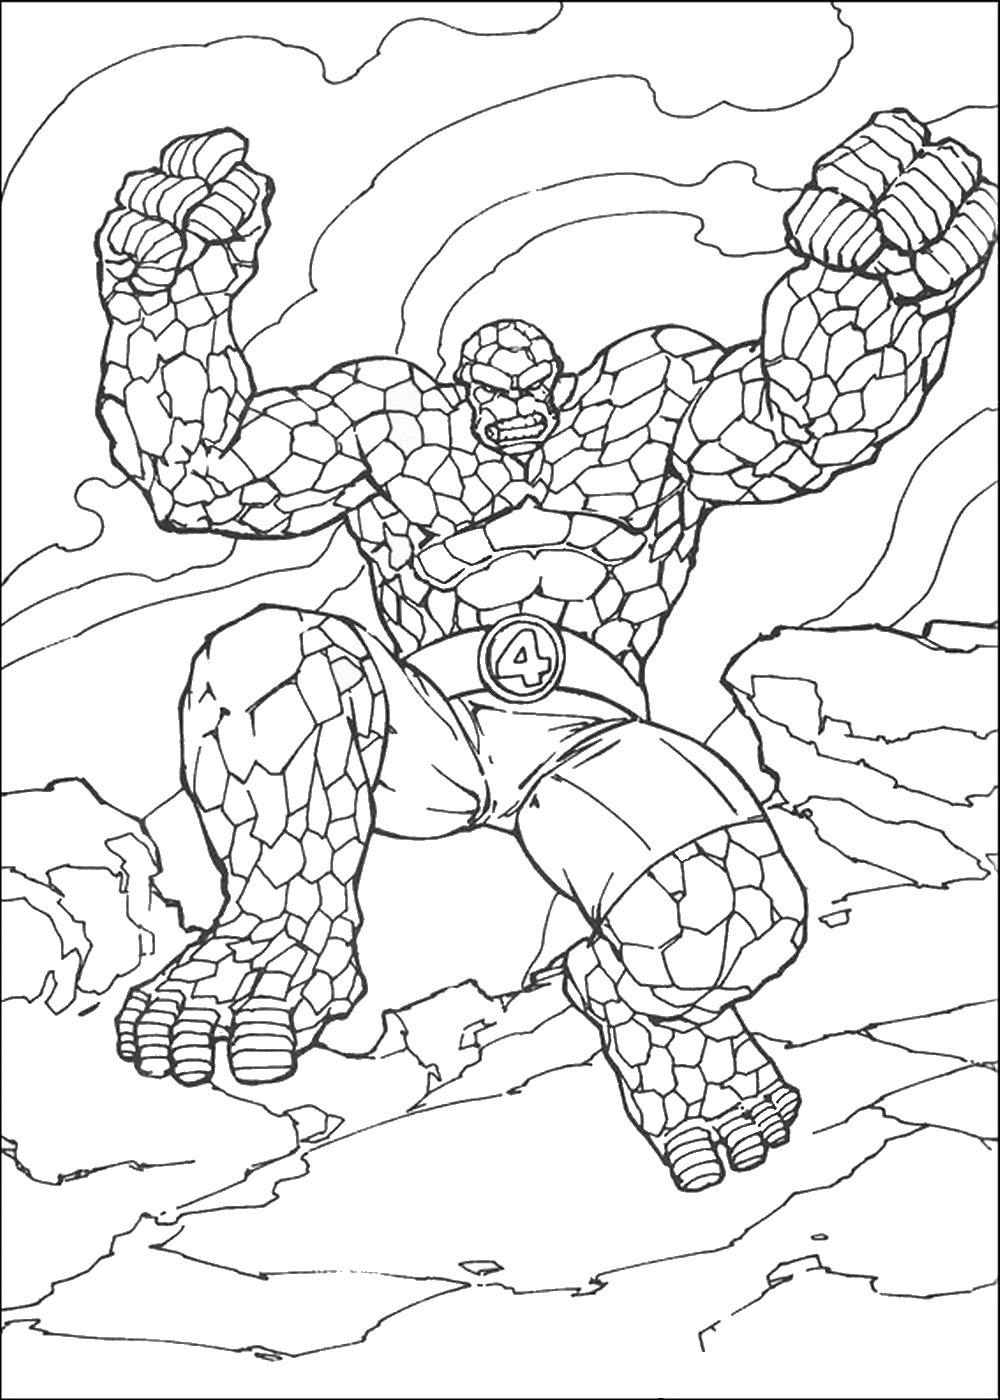 Creature from the fantastic four